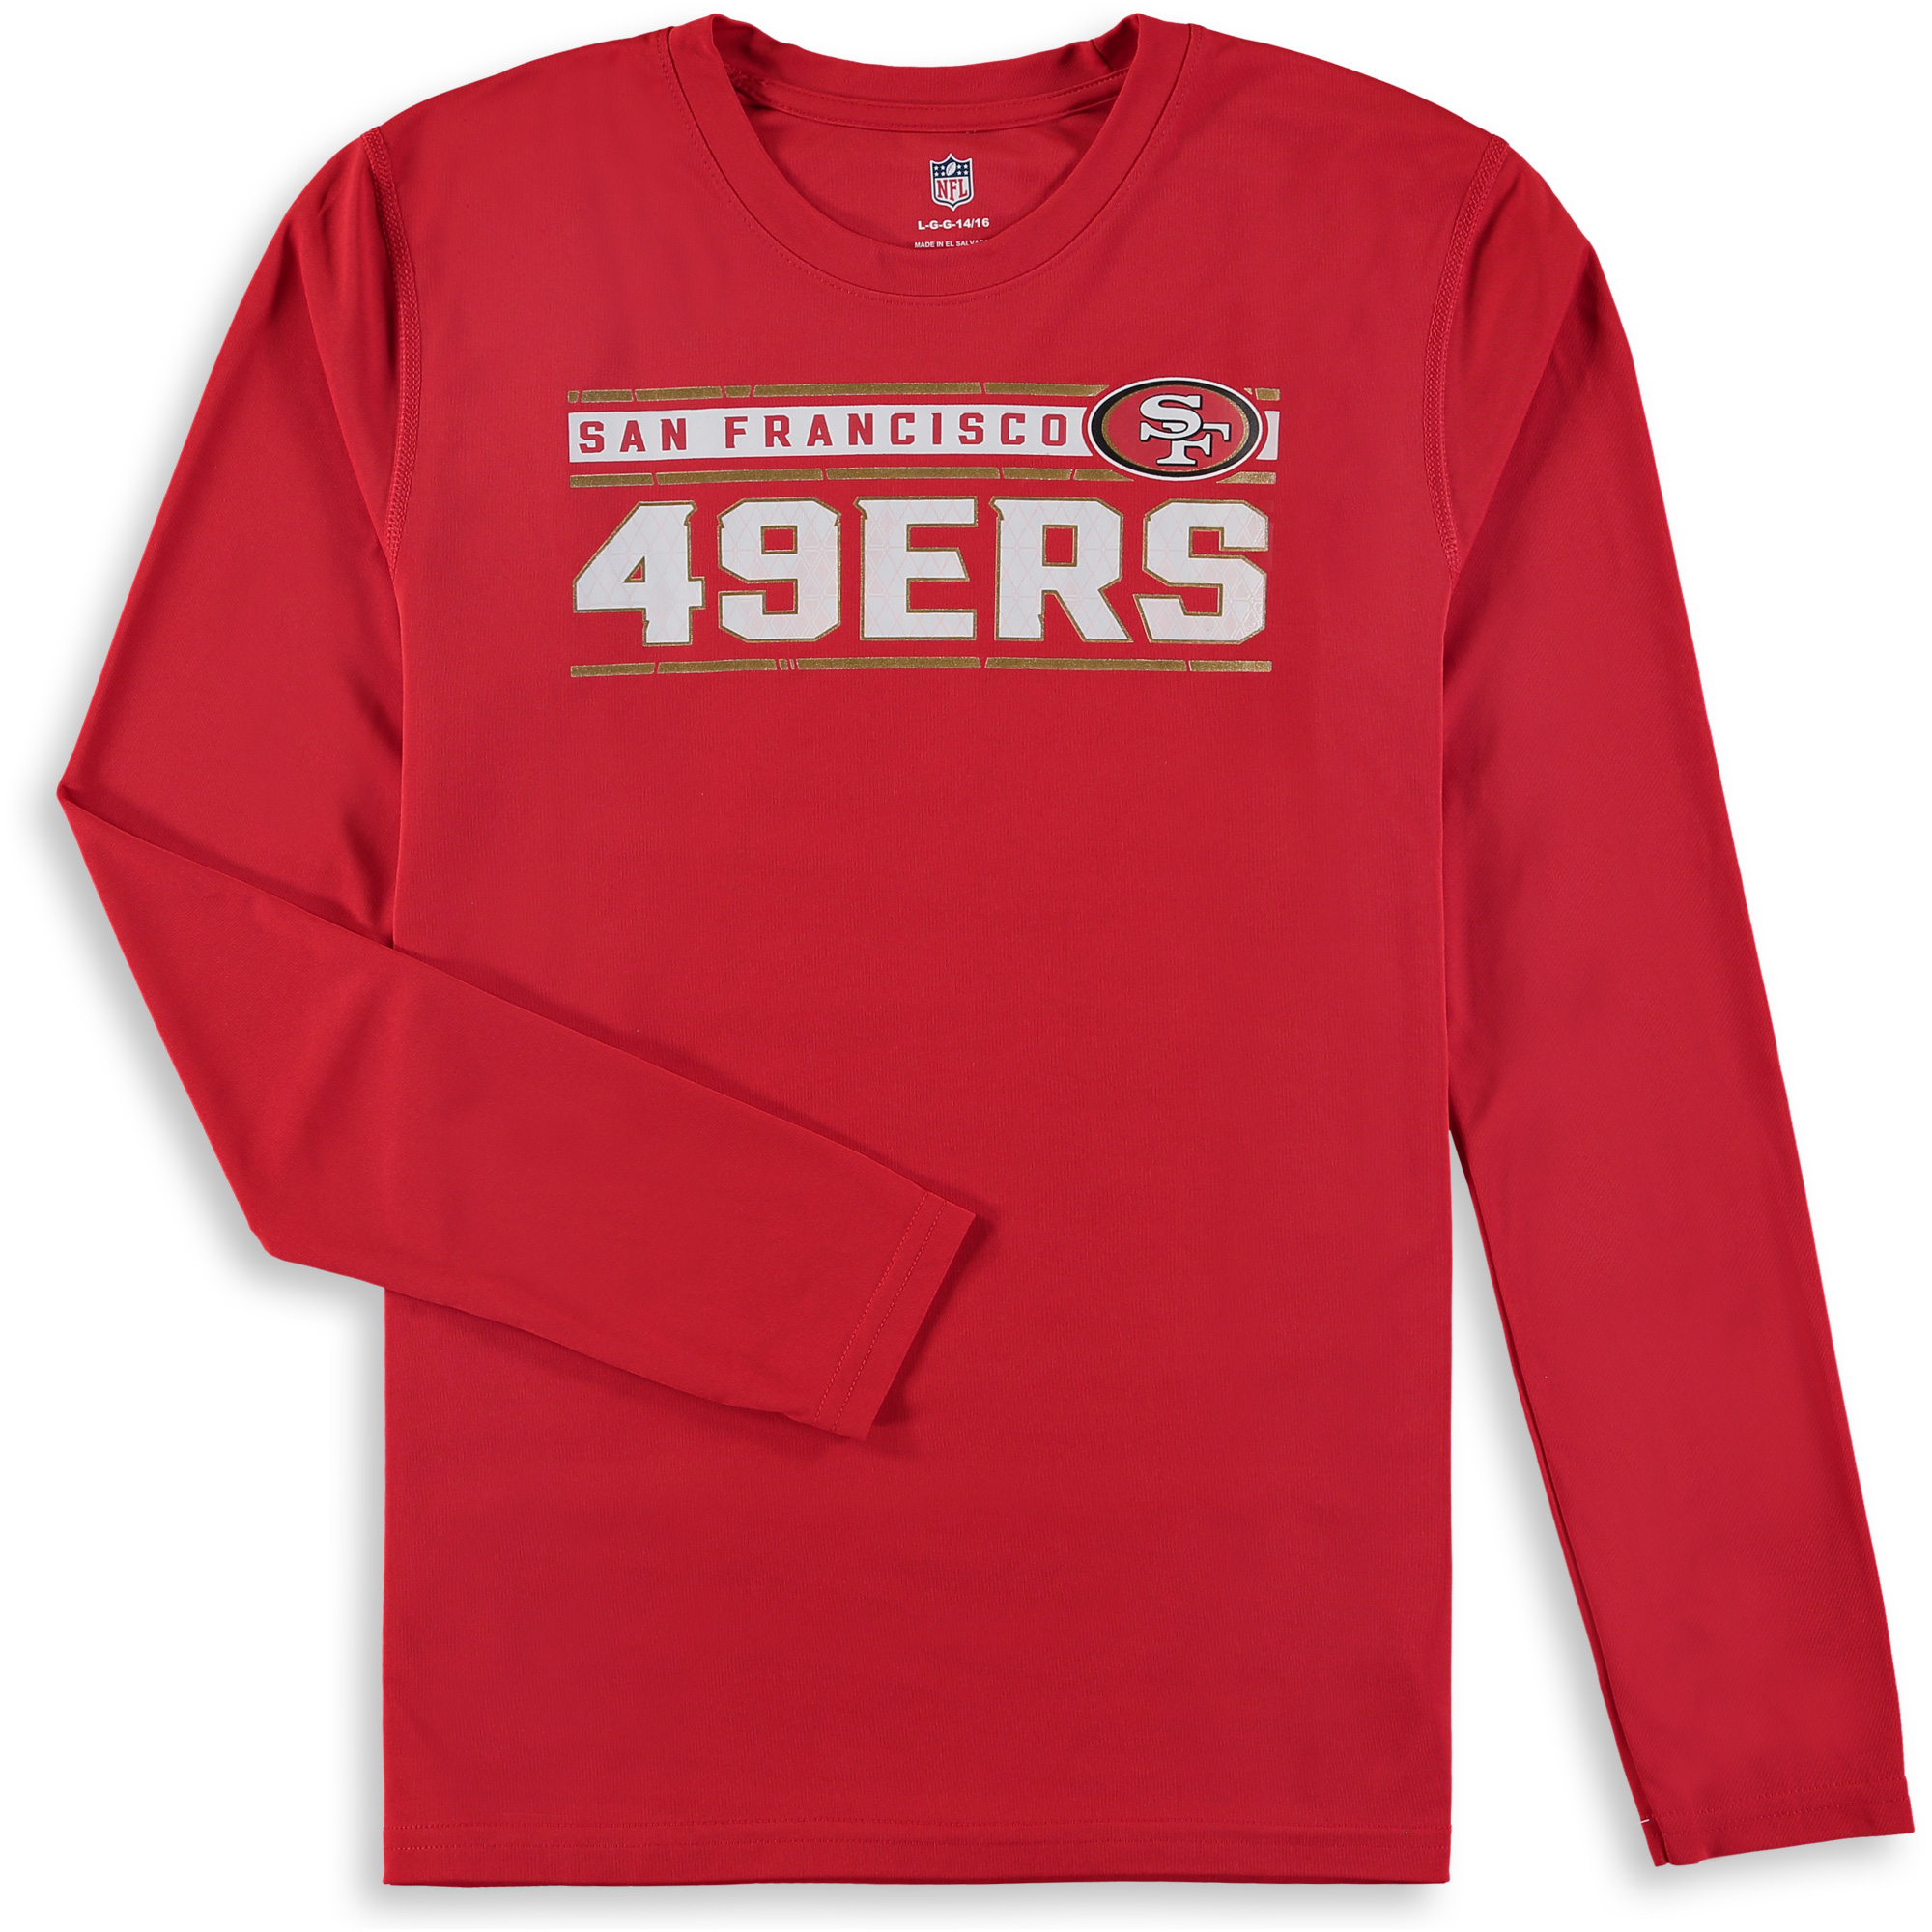 San Francisco 49ers Youth Re-Generation Performance Long Sleeve T-Shirt - Scarlet